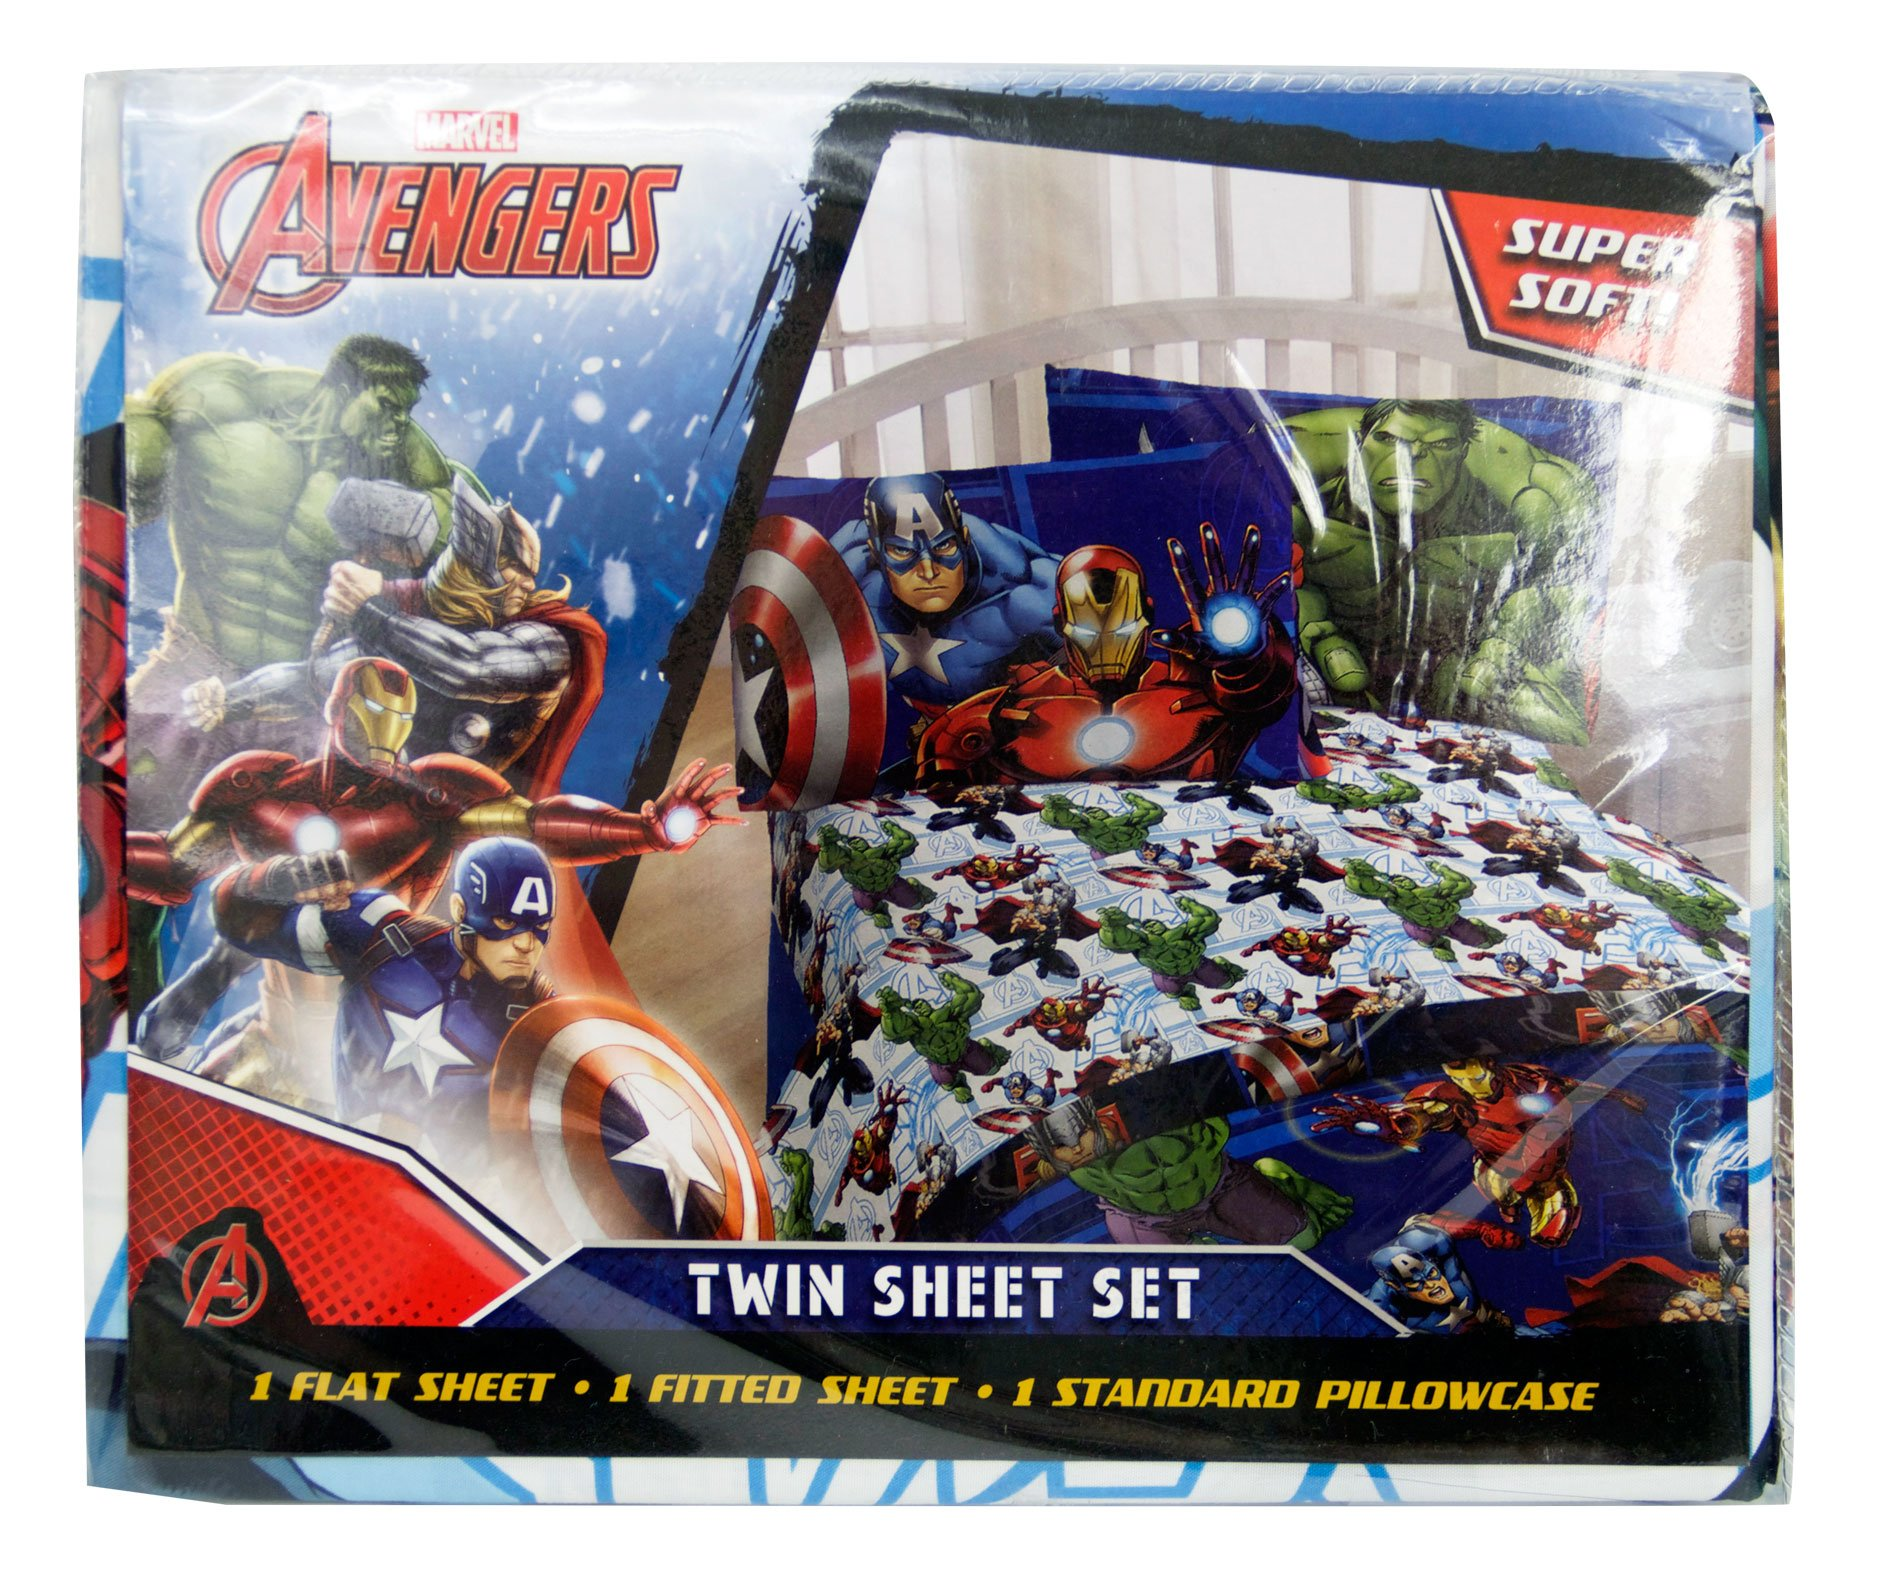 Marvel Avengers Heroic Age Blue/White 3 Piece Twin Sheet Set with Captain America, Thor, Ironman & Hulk by Marvel (Image #5)